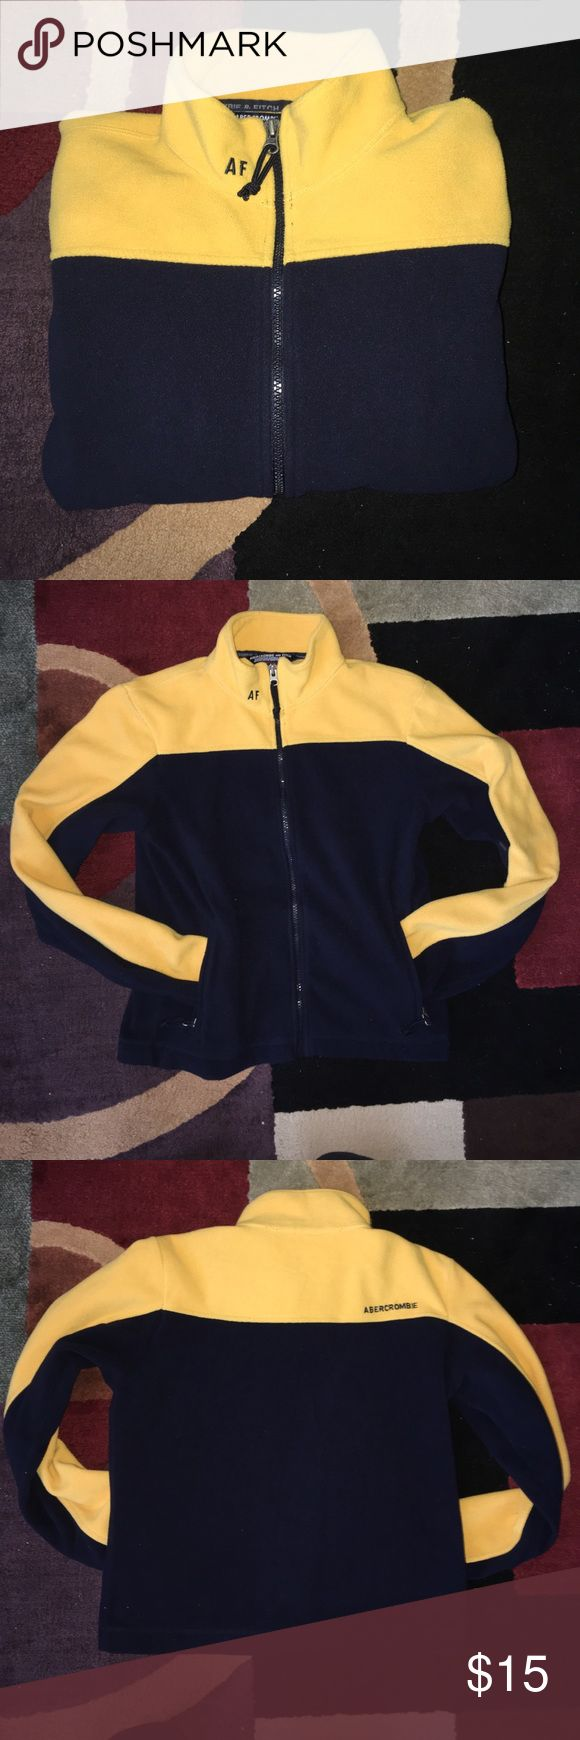 Abercrombie and Fitch fleece zip up! 🎉 One of a kind! Looks cute on. Great condition and warm Abercrombie & Fitch Tops Sweatshirts & Hoodies